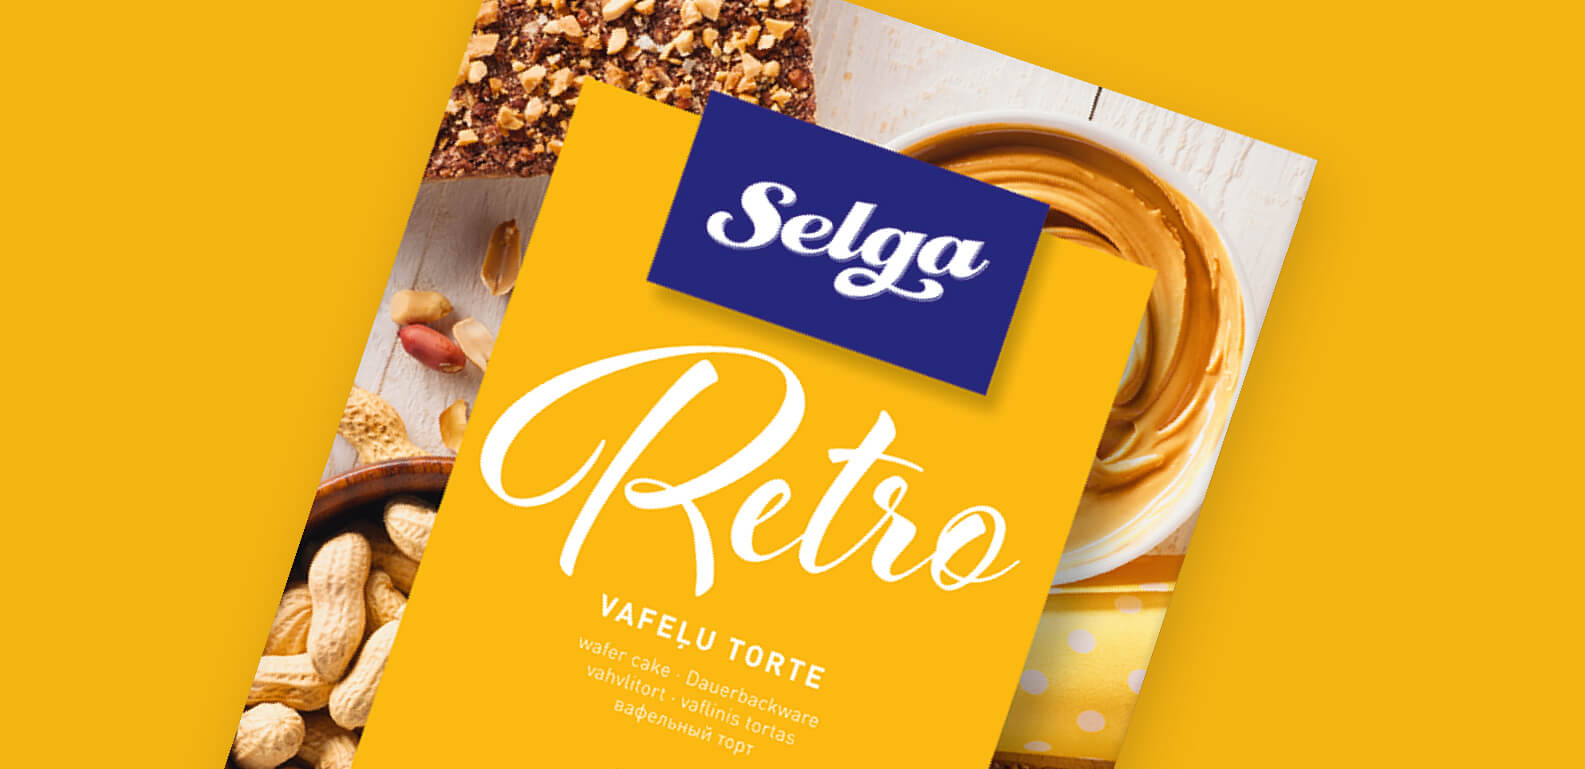 Selga Wafflecake - packaging design